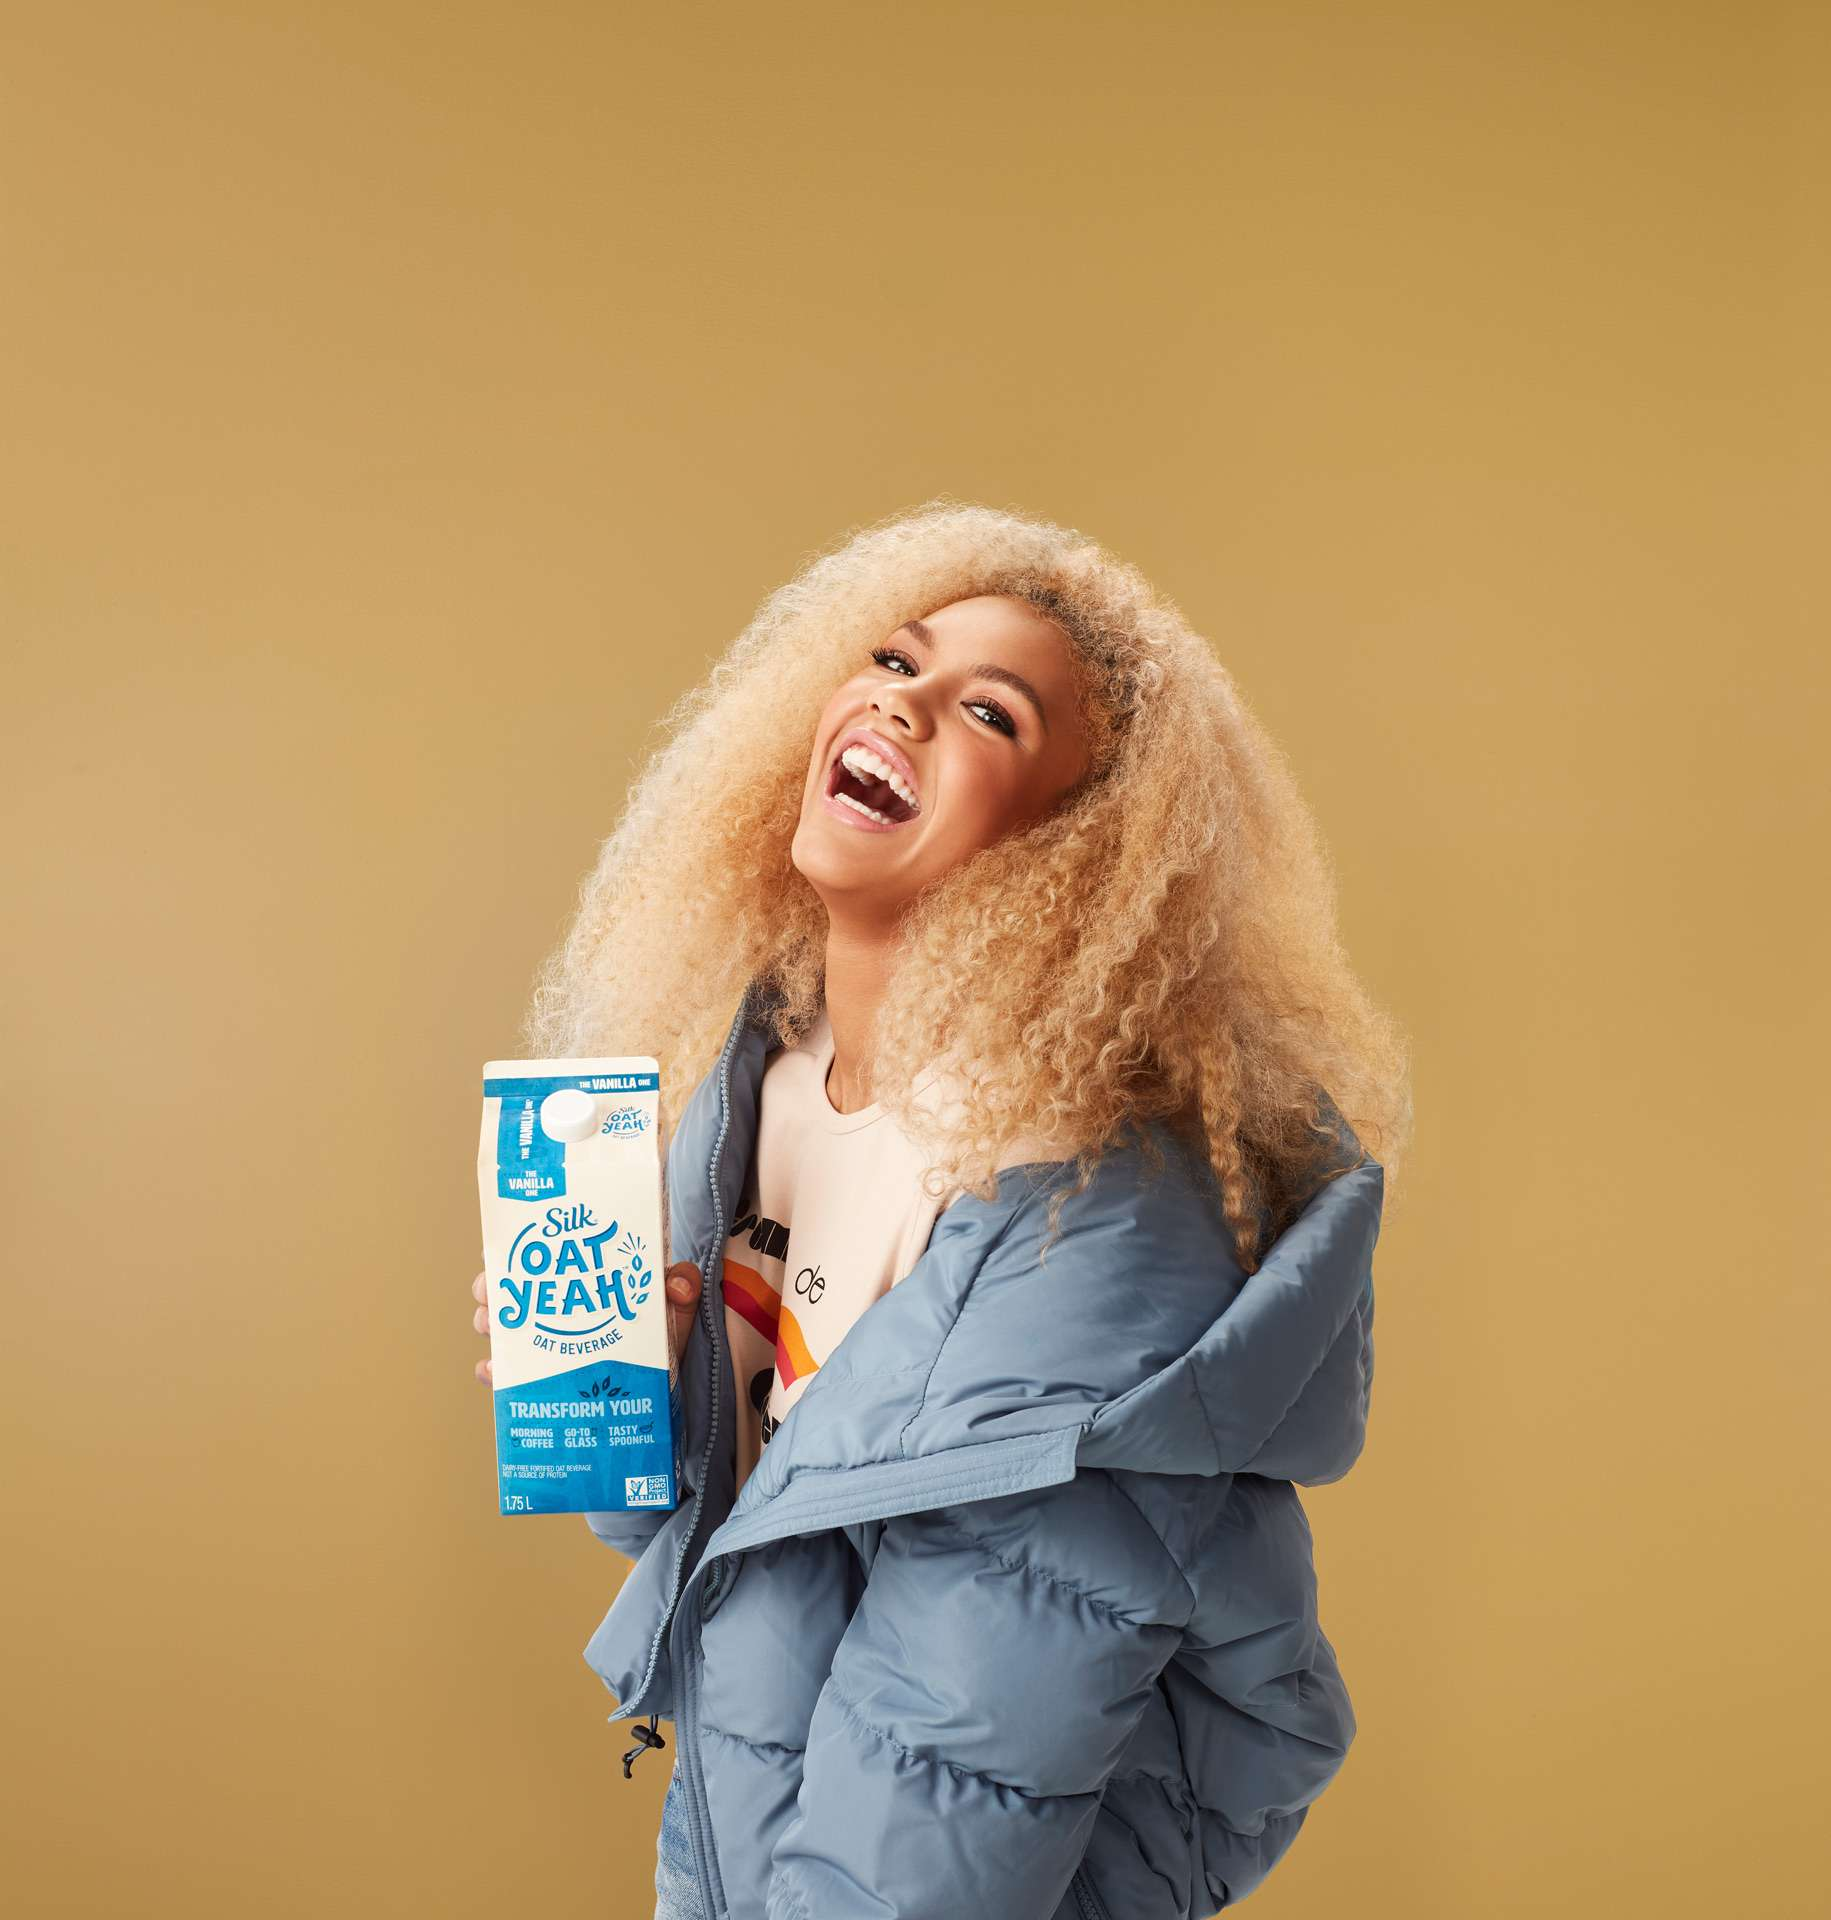 blonde woman big hair laughing wearing baby blue parka holding carton of vanilla oat milk by Simon Duhamel for Oat Yeah Silk and Carl agency